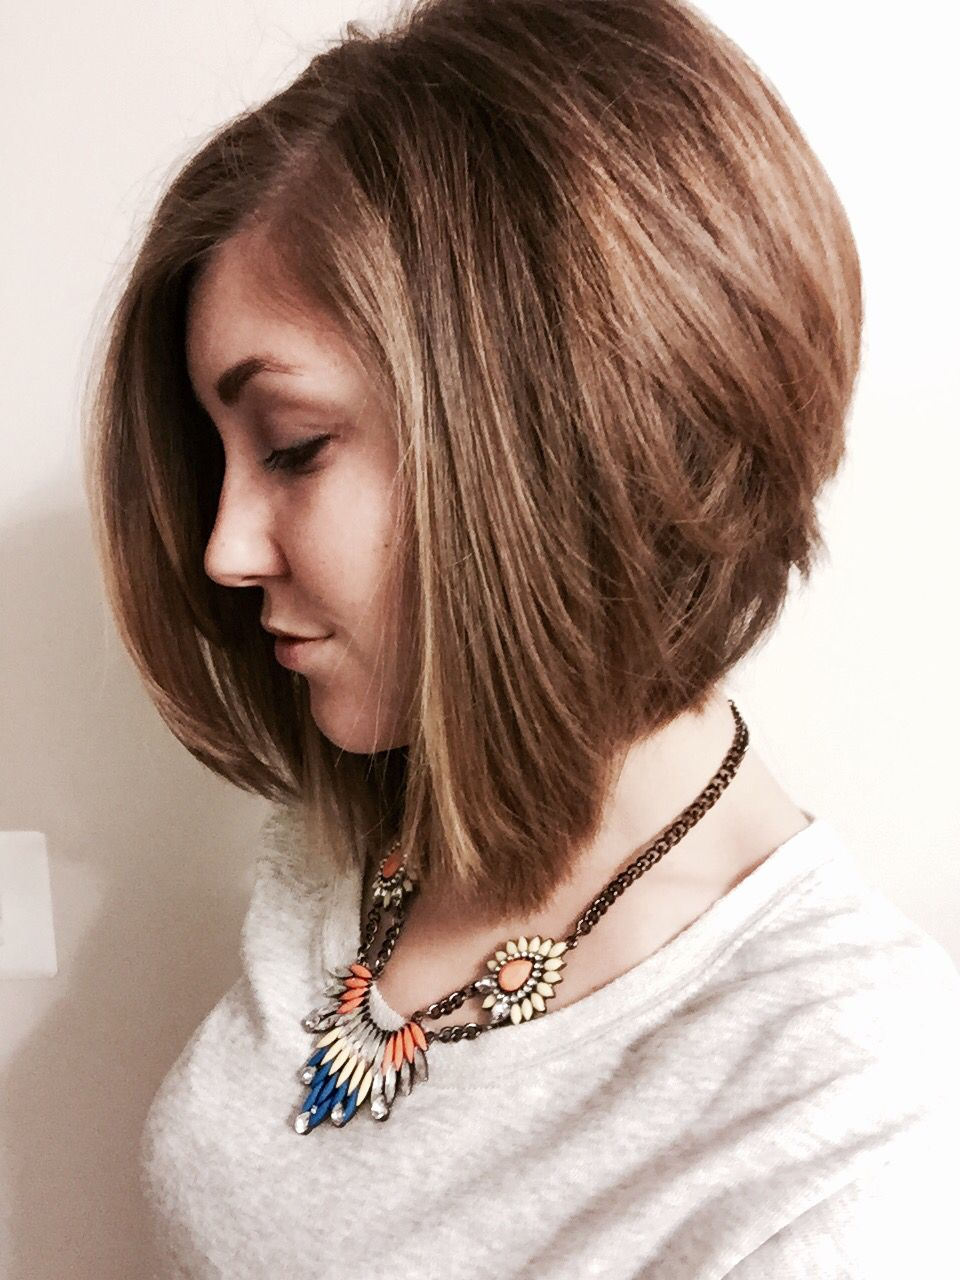 A-line stacked bob | future hair do's | Stacked bob fine hair, Stacked bob hairstyles, Short ...